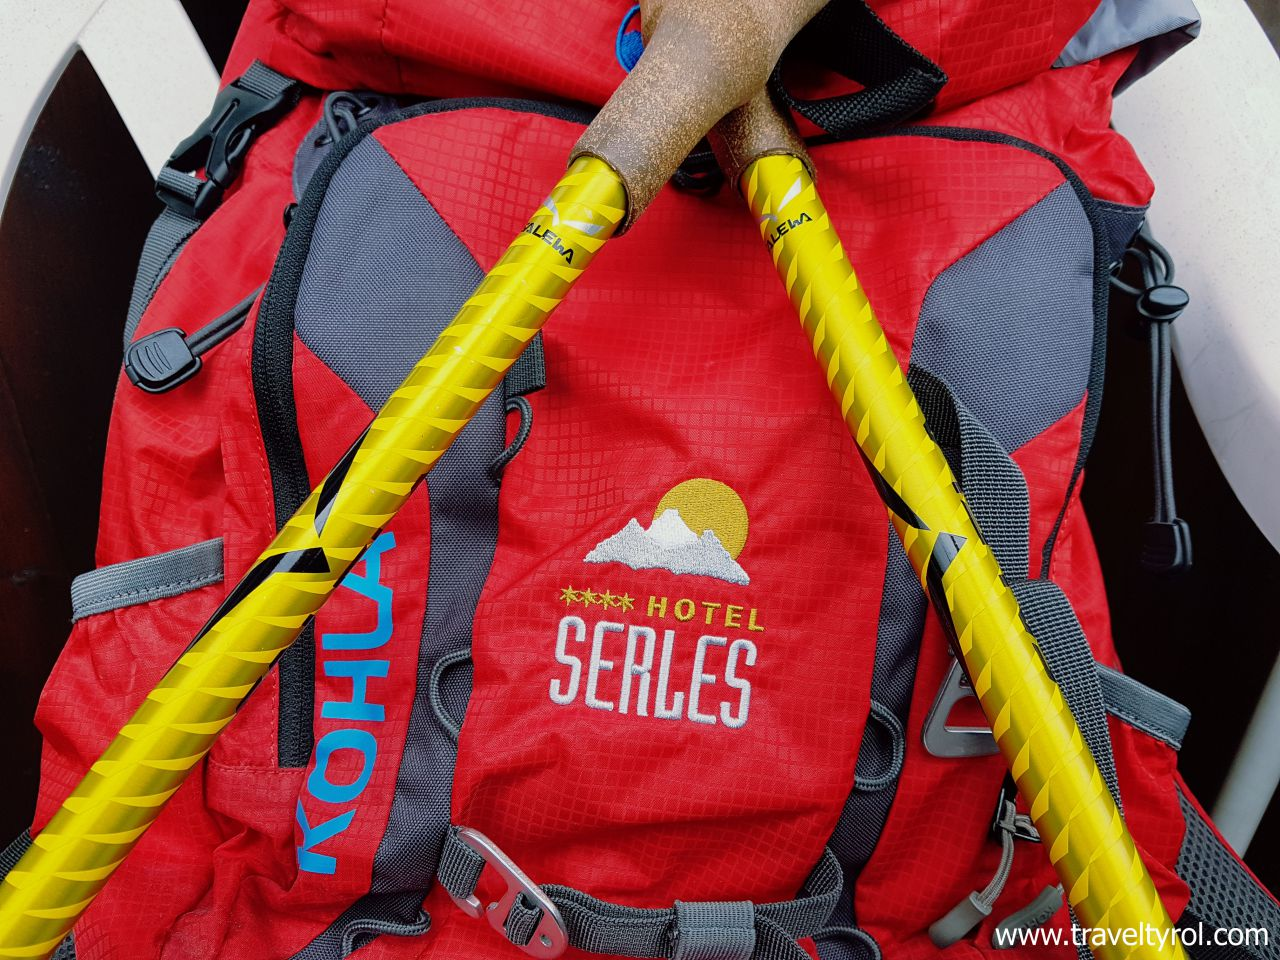 Hiking poles and rucksack from Hotel Serles